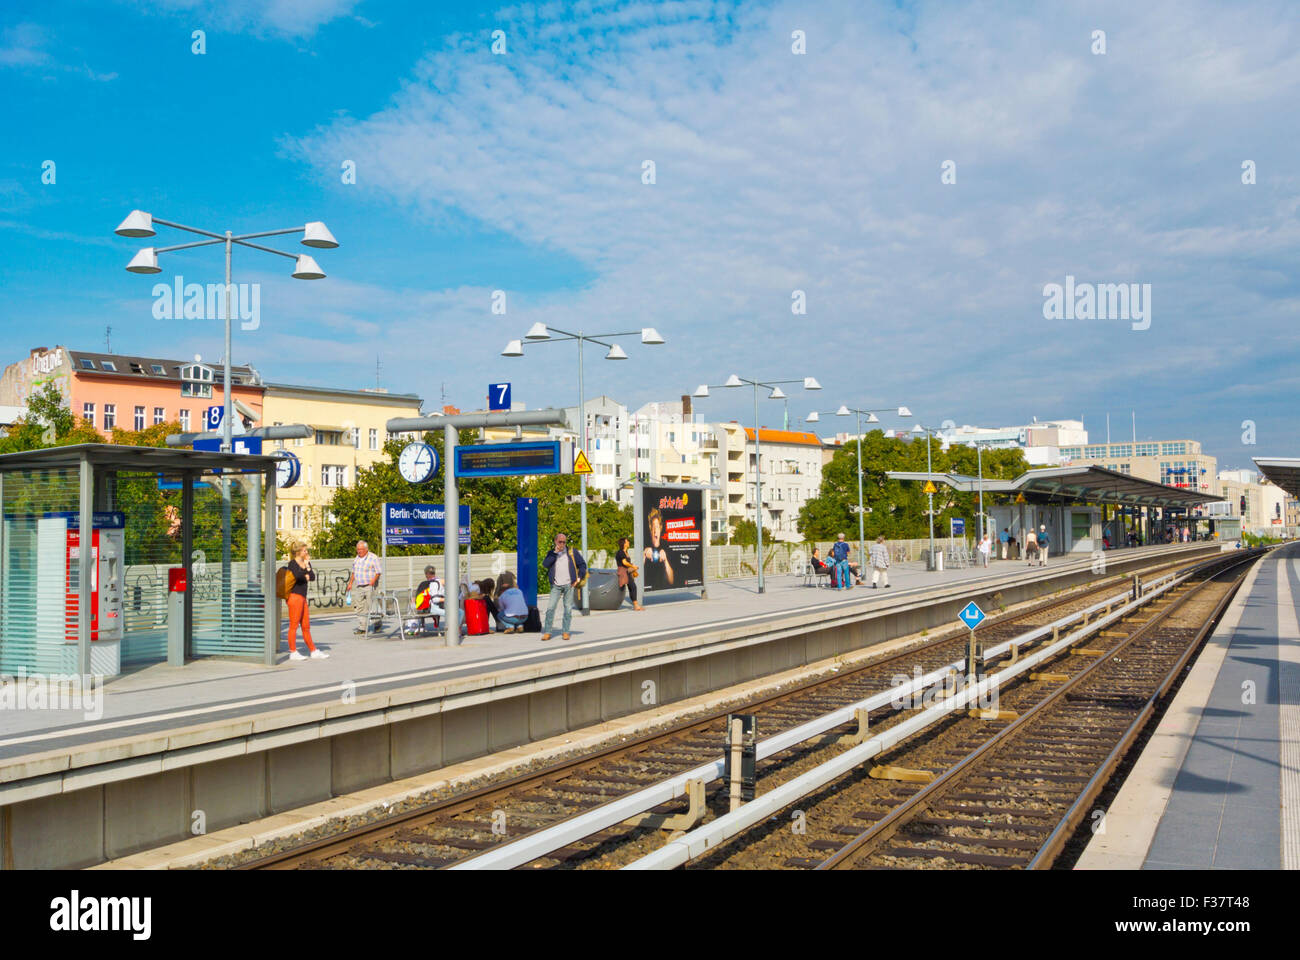 Charlotenburg S-Bahn station, west Berlin, Germany Stock Photo